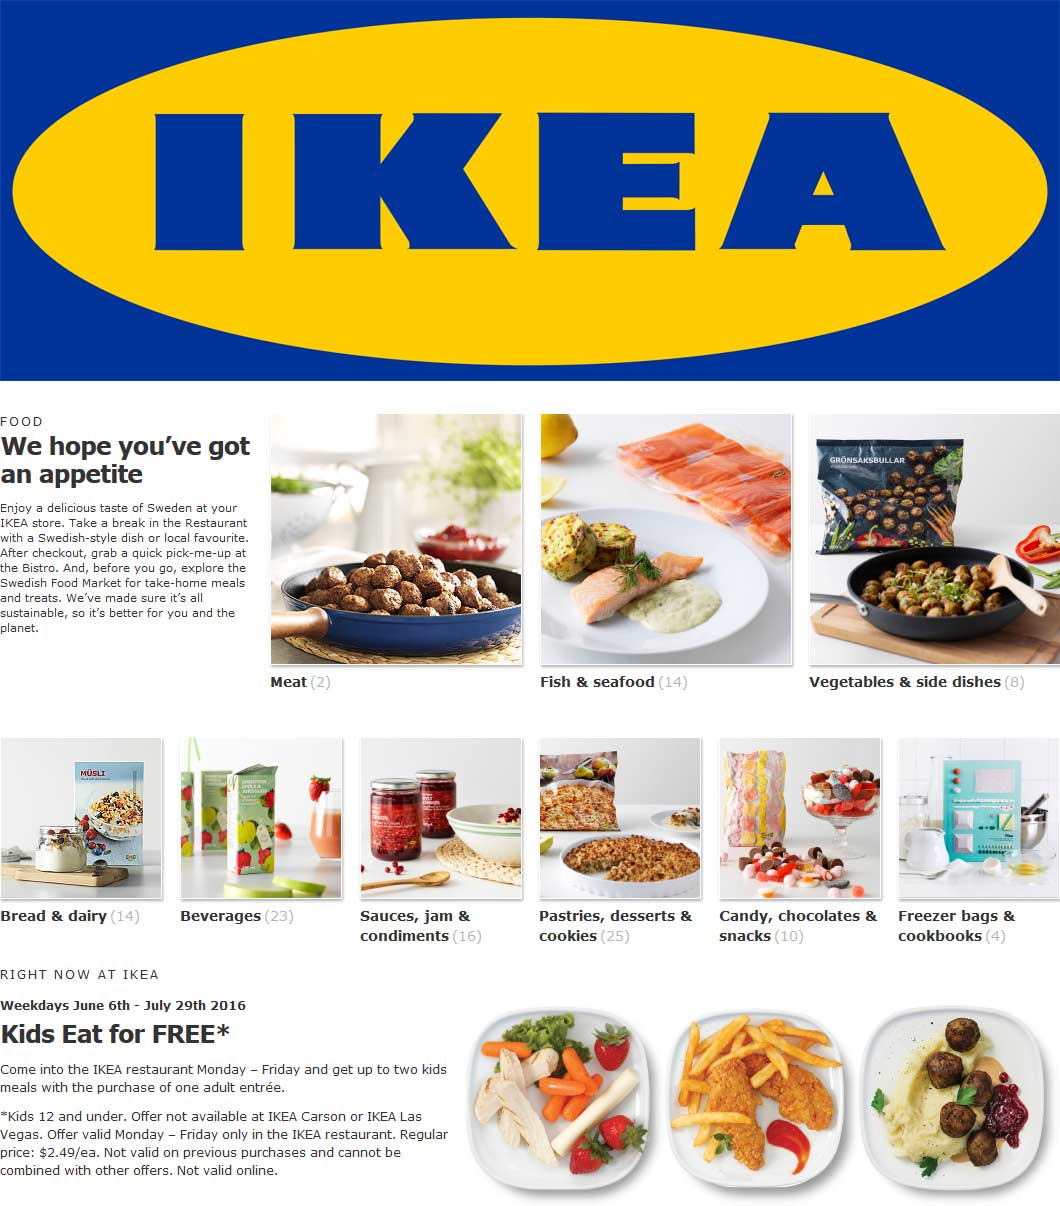 IKEA Coupon December 2016 Kids eat free weekdays at IKEA